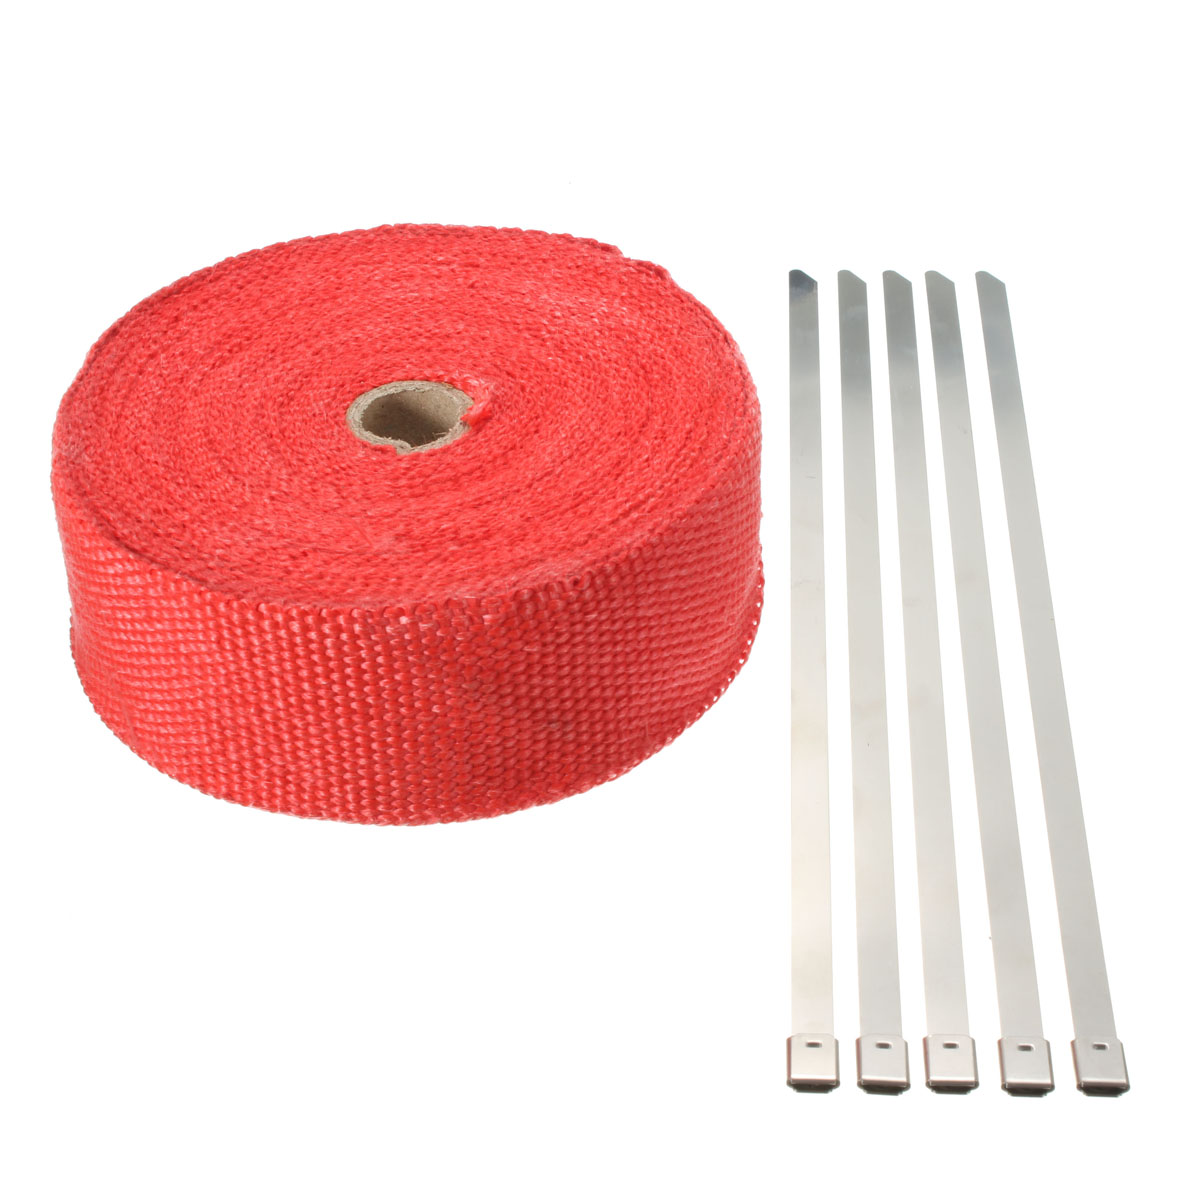 15M Red Exhaust Pipe Insulating Wrap with 5 Zip Ties